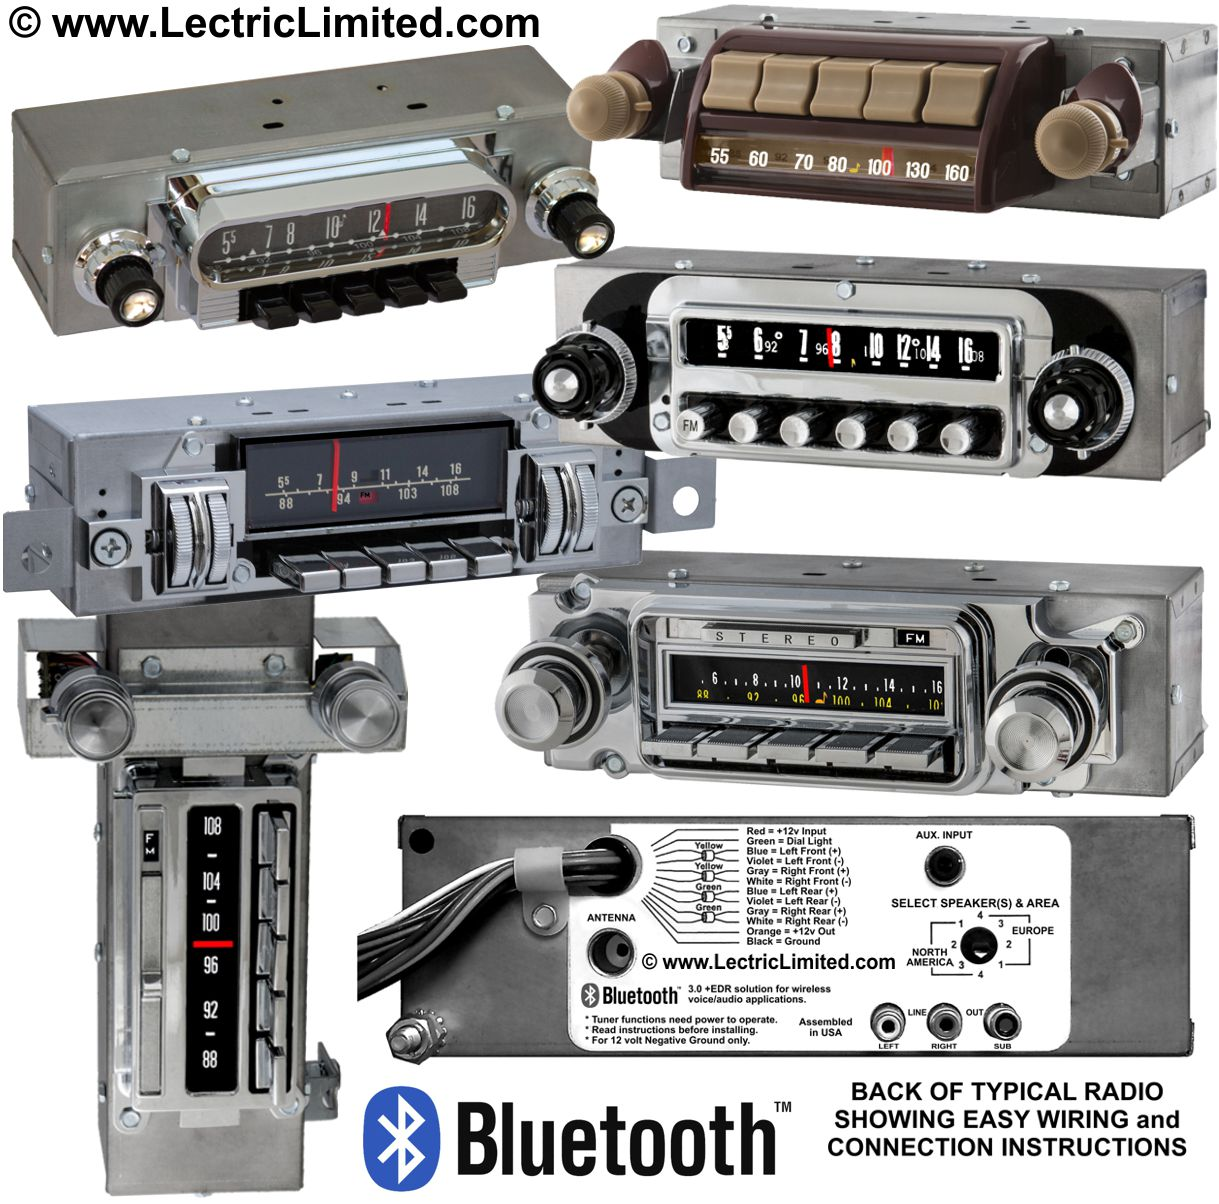 Authentic Looking AM FM Bluetooth Radios